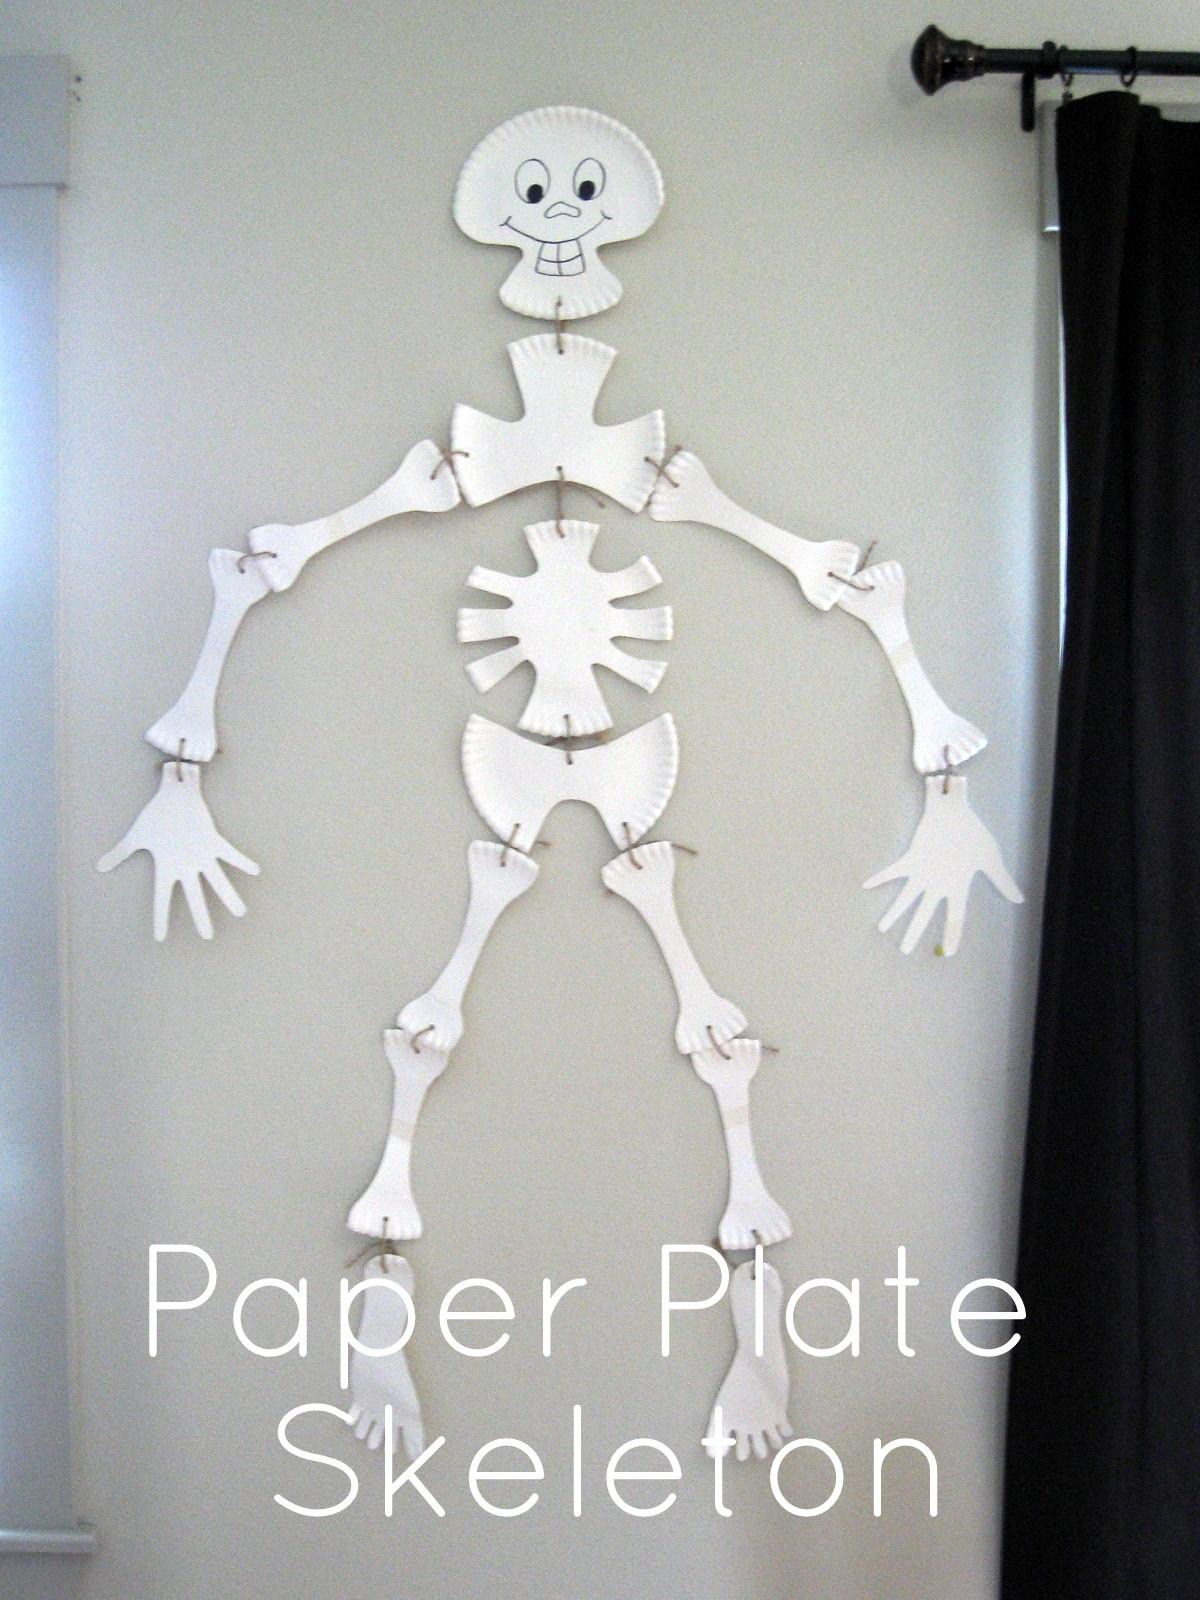 Pickup Some Creativity Paper Plate Skeleton Tutorial